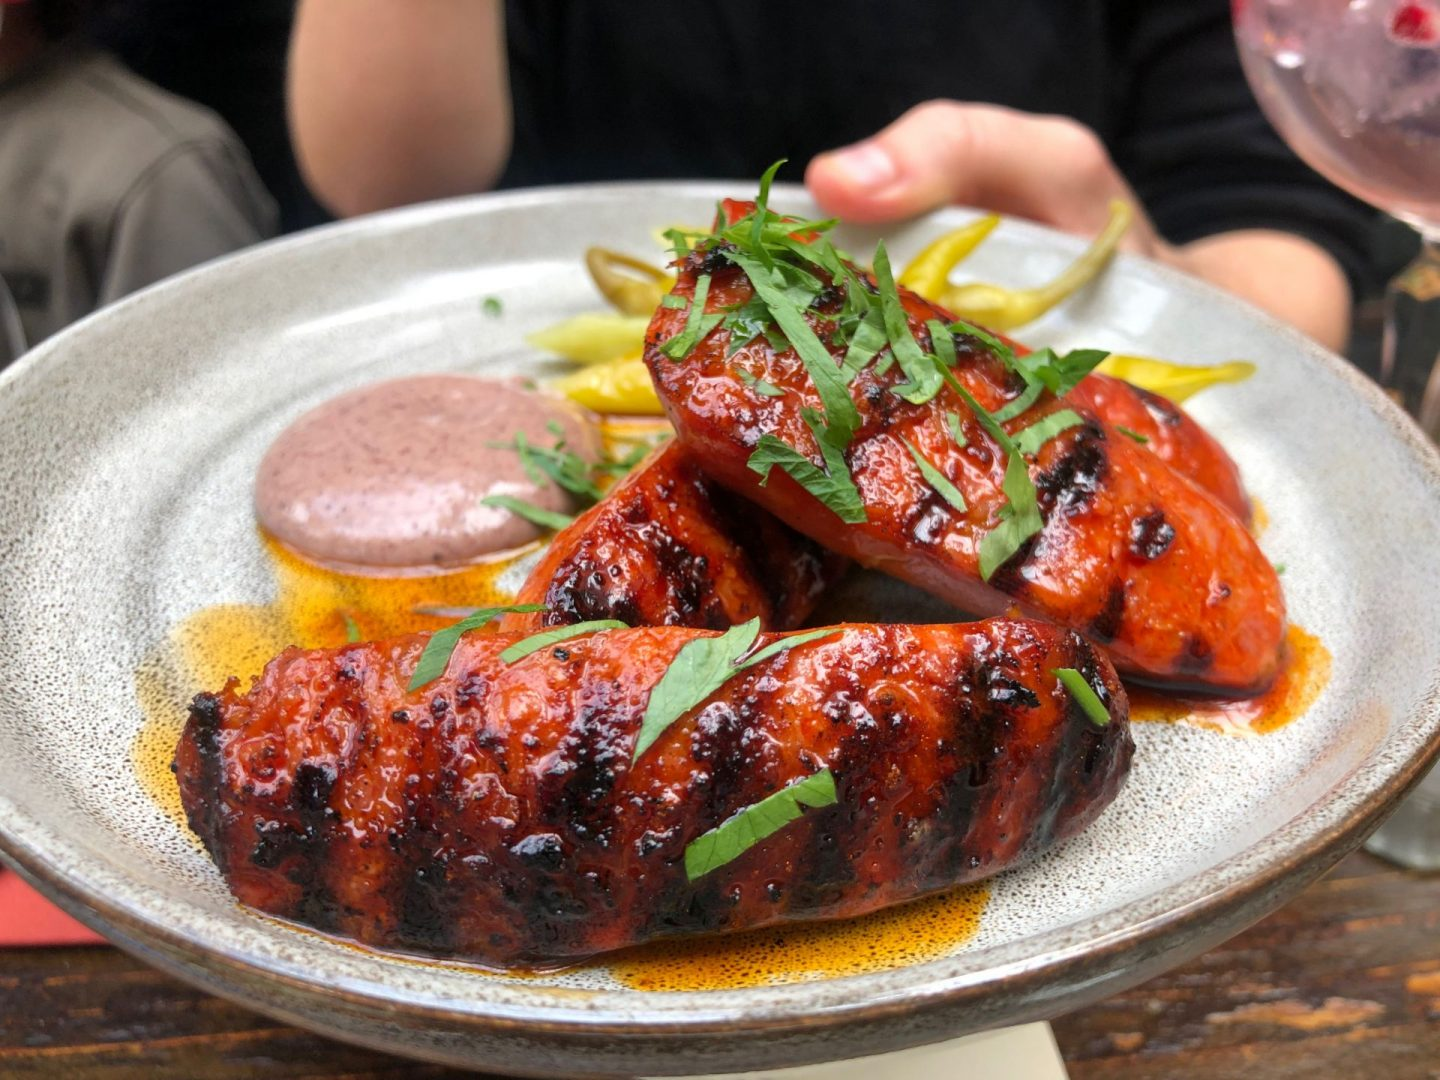 A plate of grilled chorizo and black olive mayo